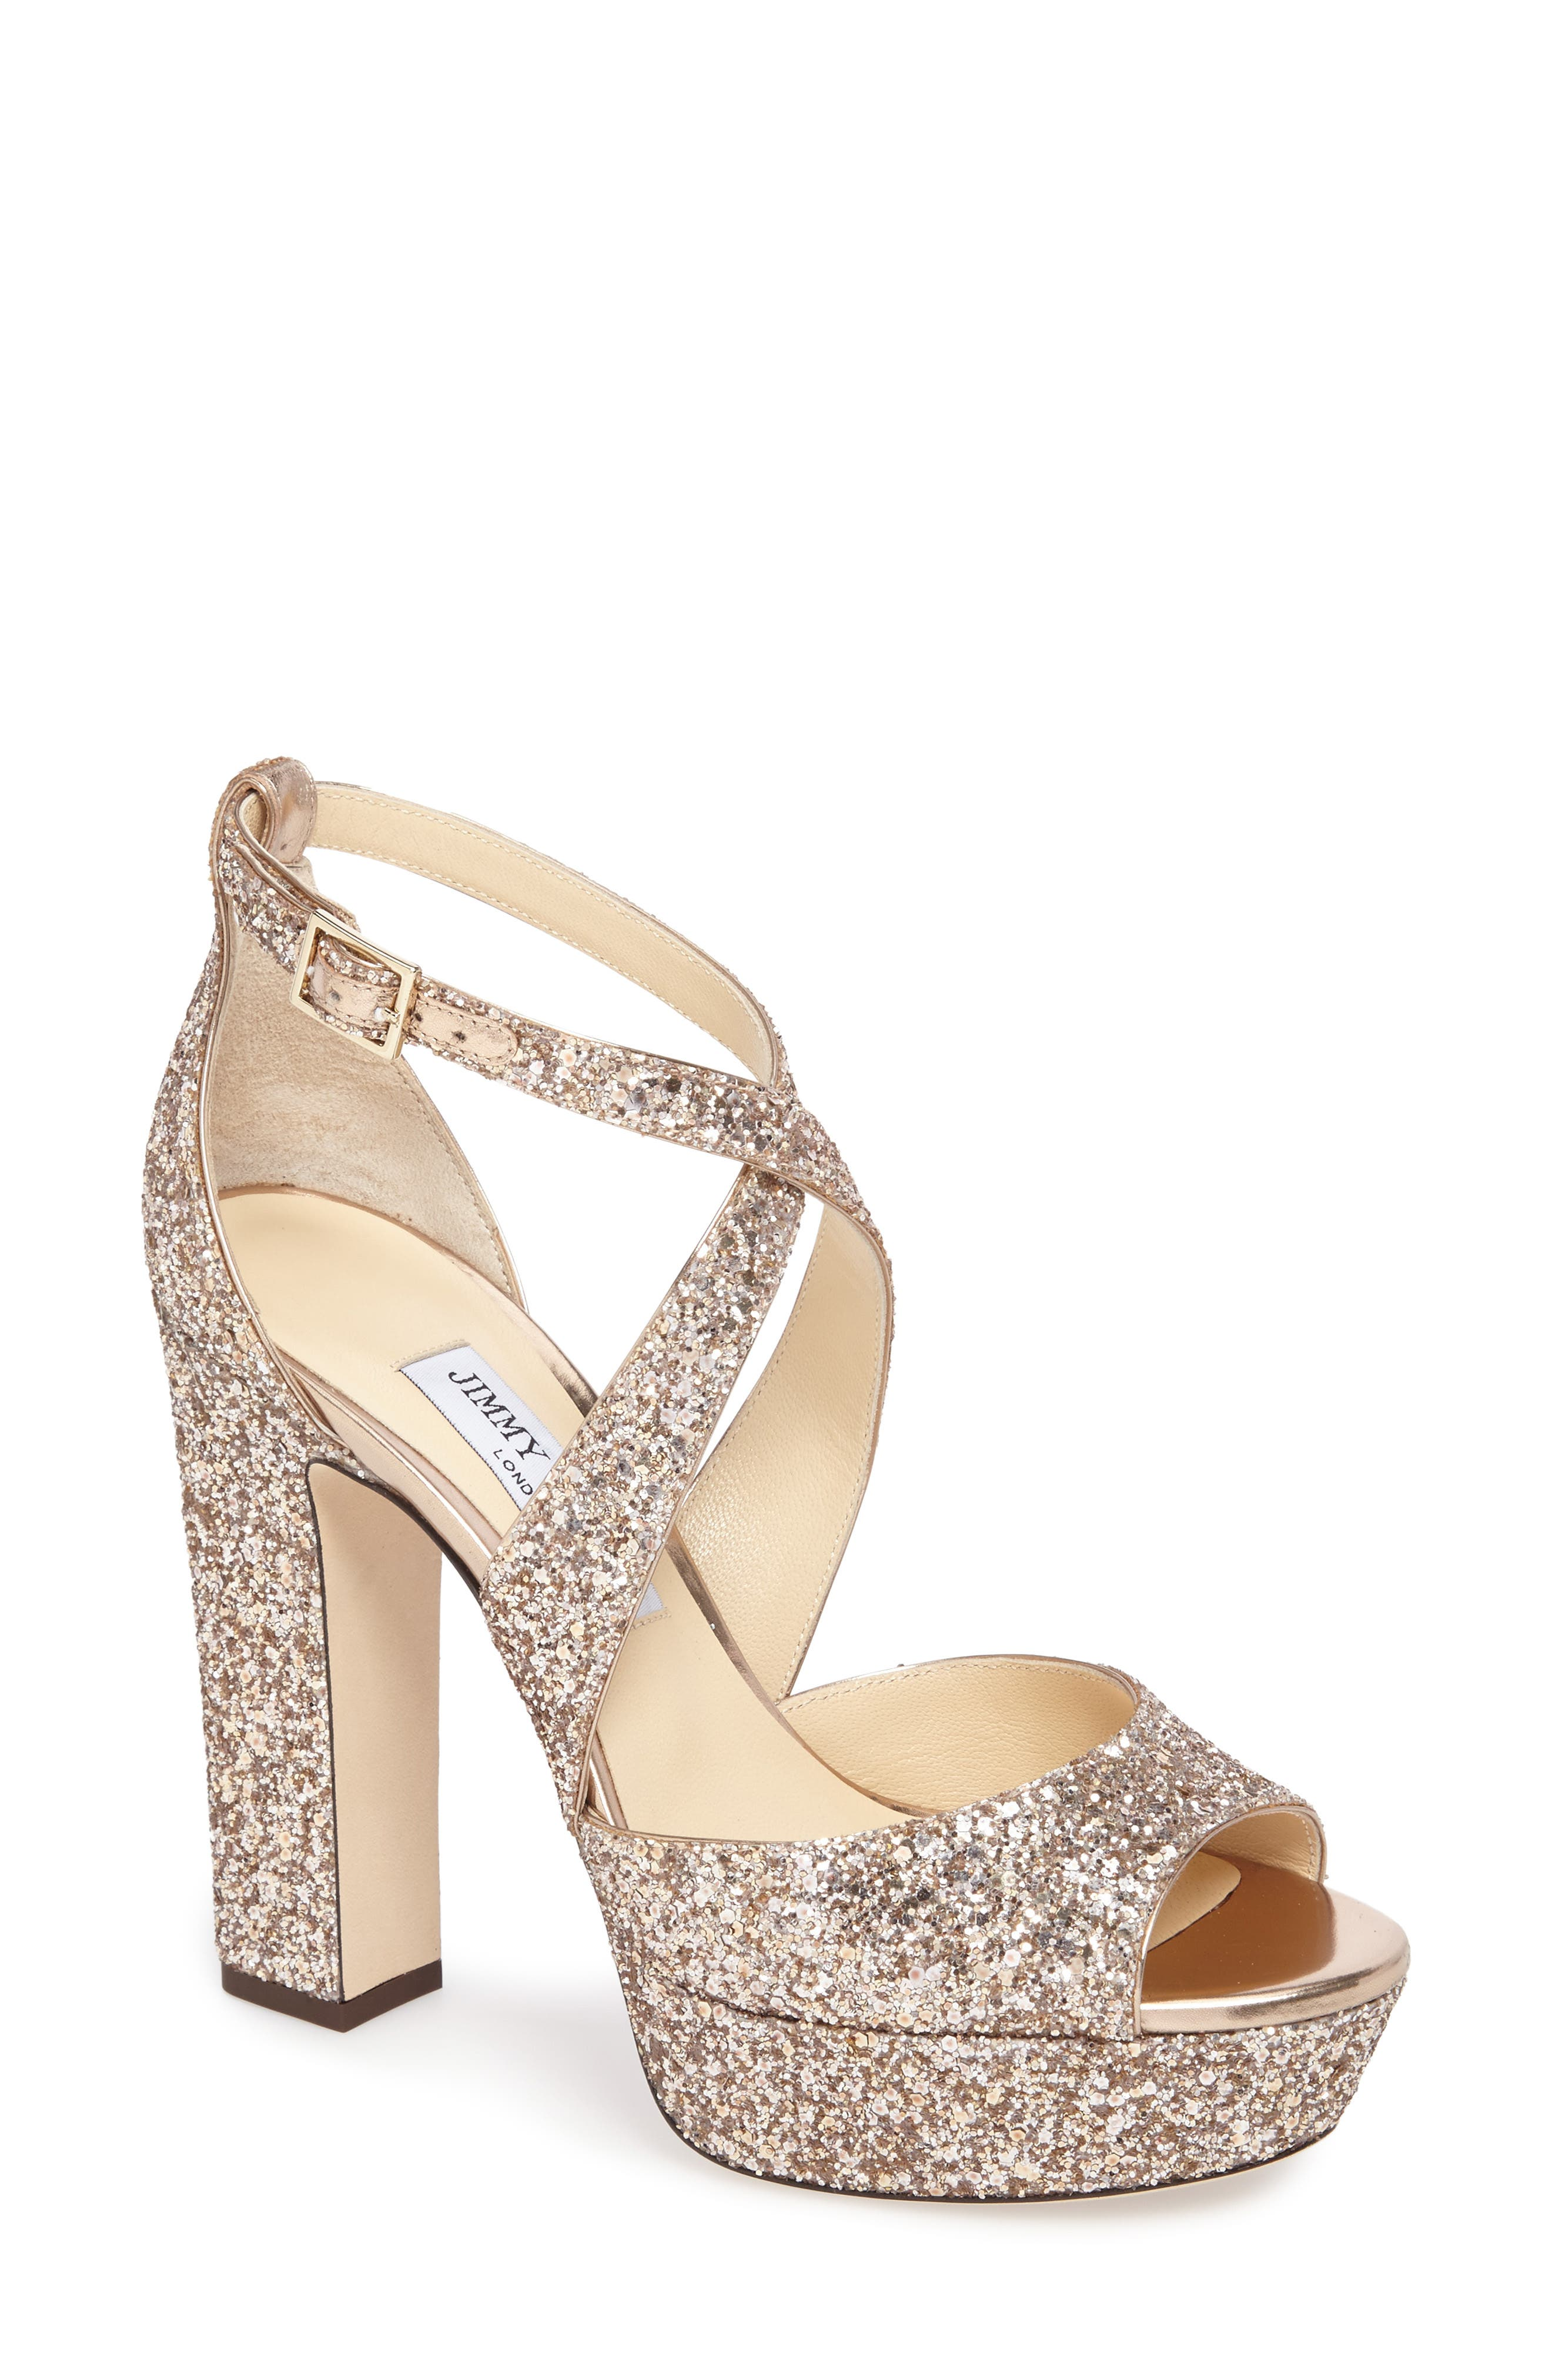 April Glitter Platform Sandal,                             Main thumbnail 1, color,                             650